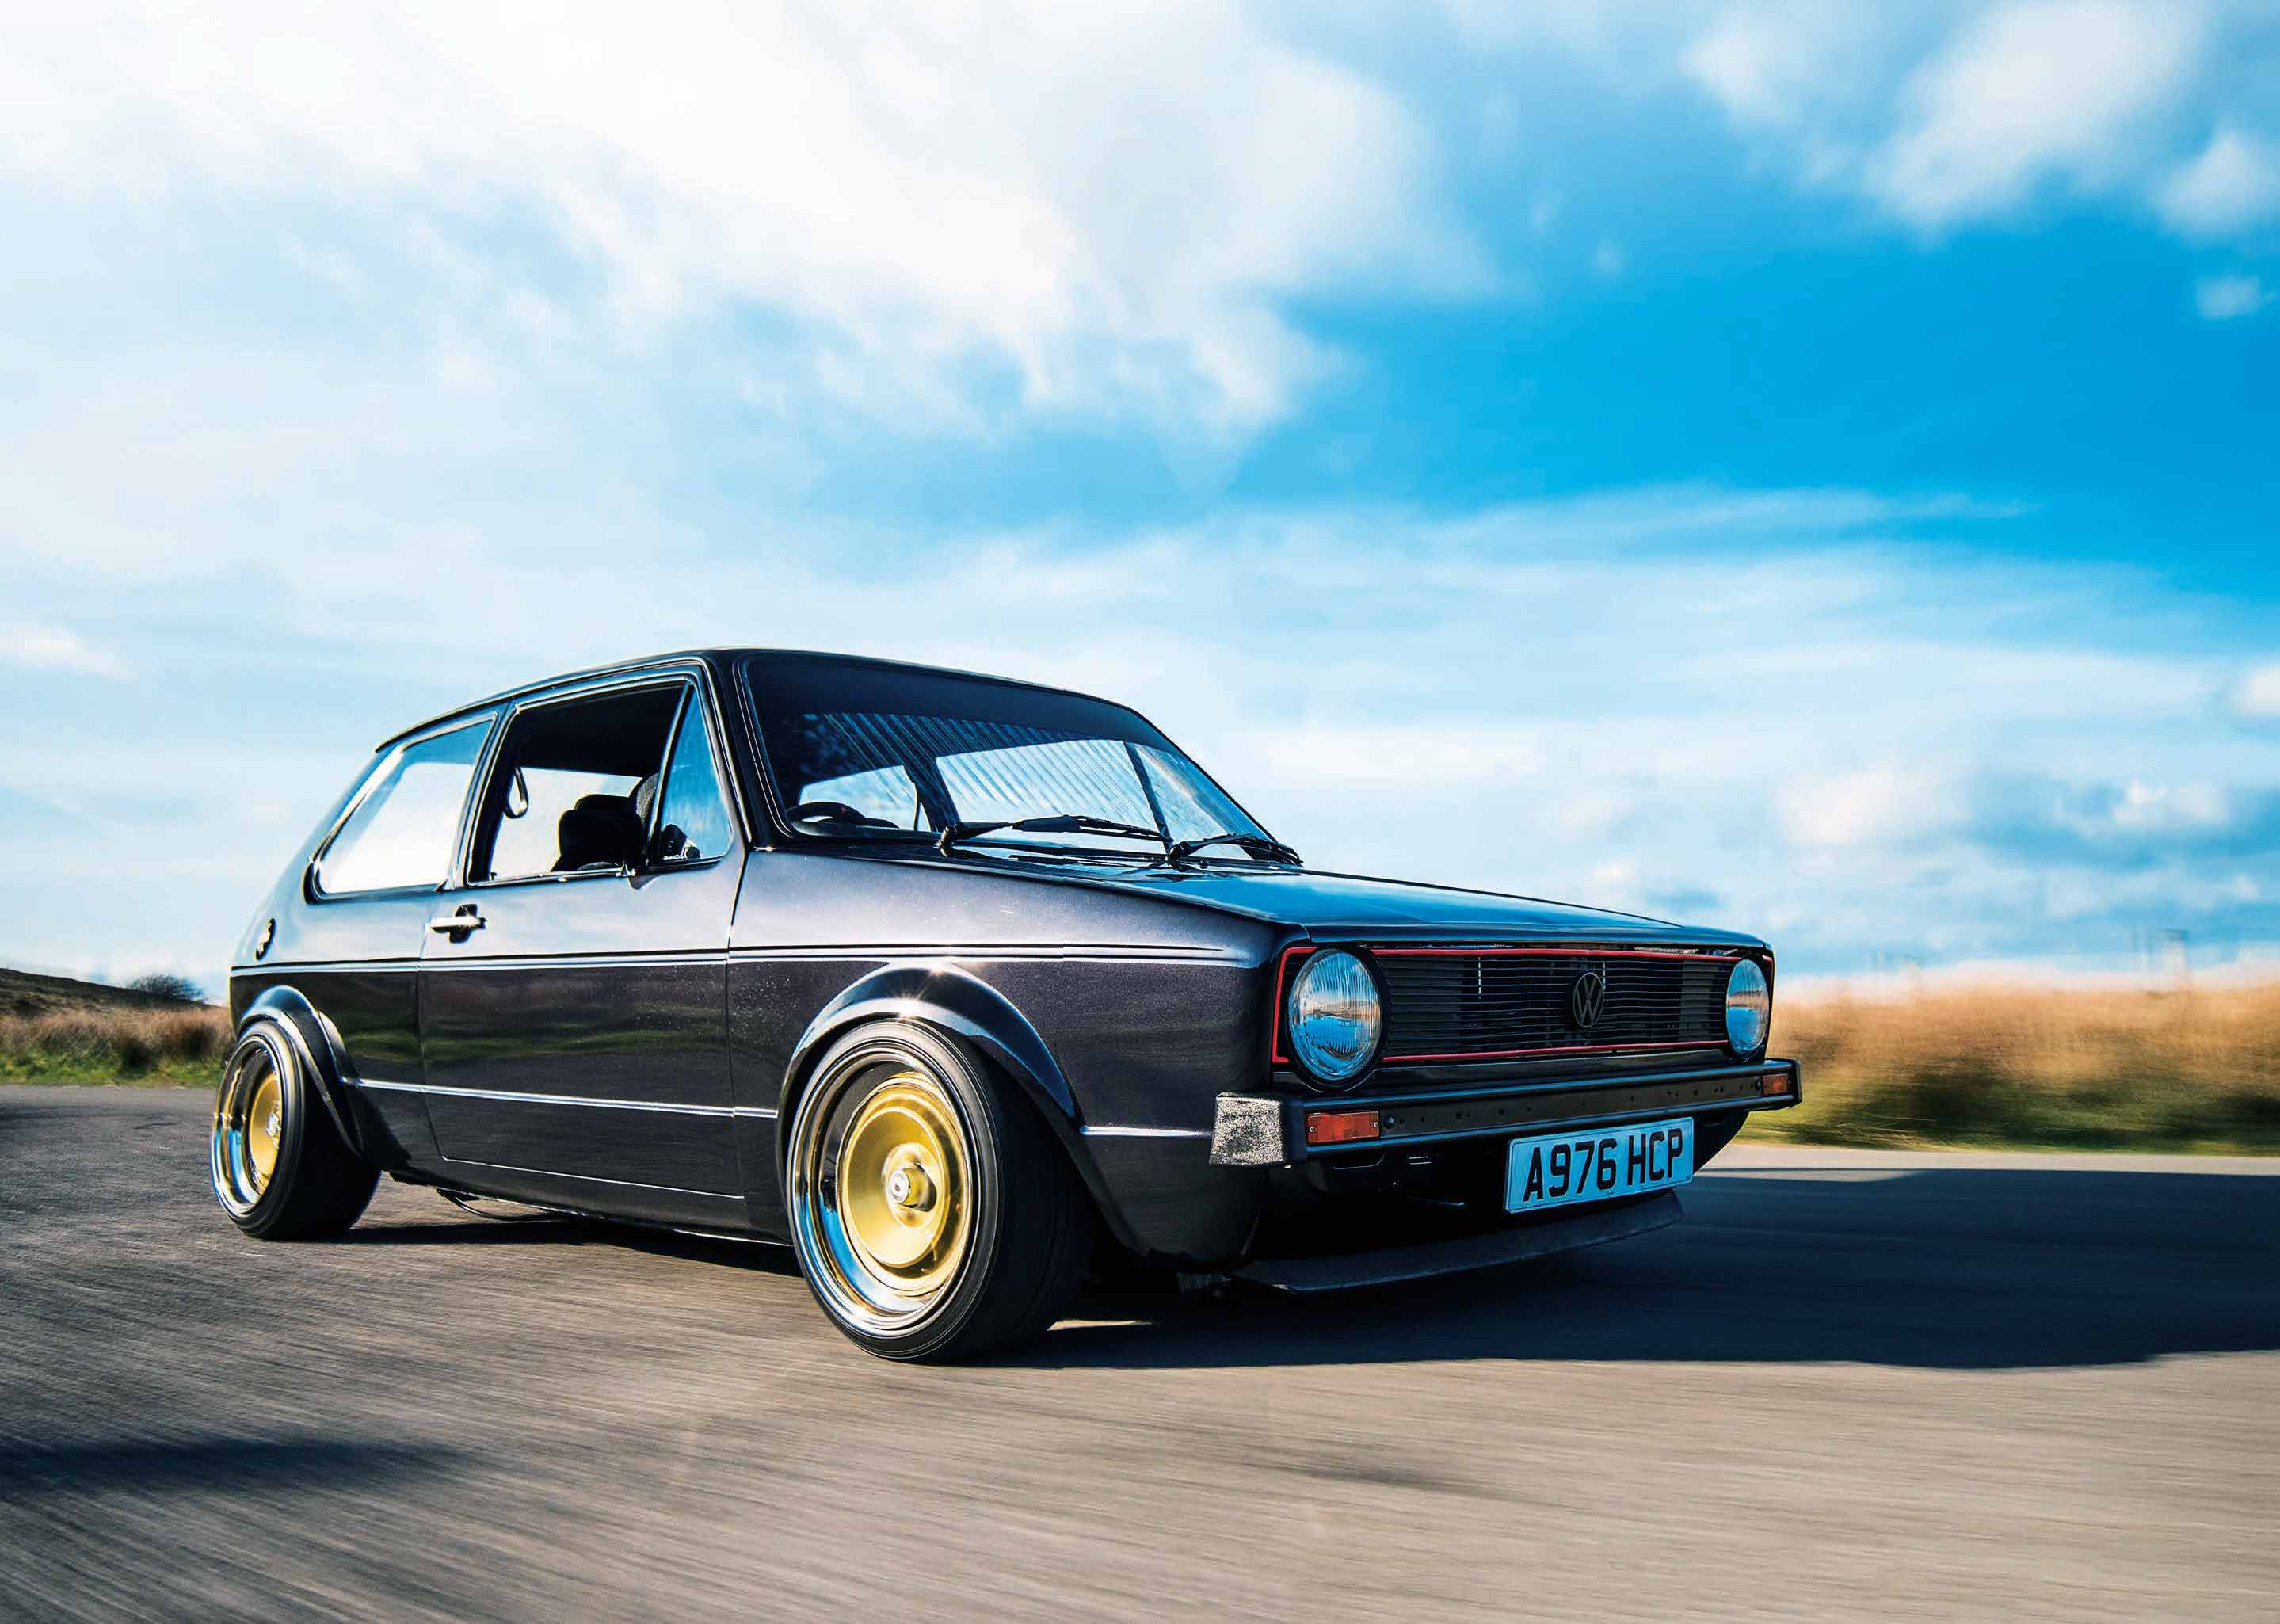 1983 volkswagen golf mk1 with bam 1 8t swap drive my. Black Bedroom Furniture Sets. Home Design Ideas